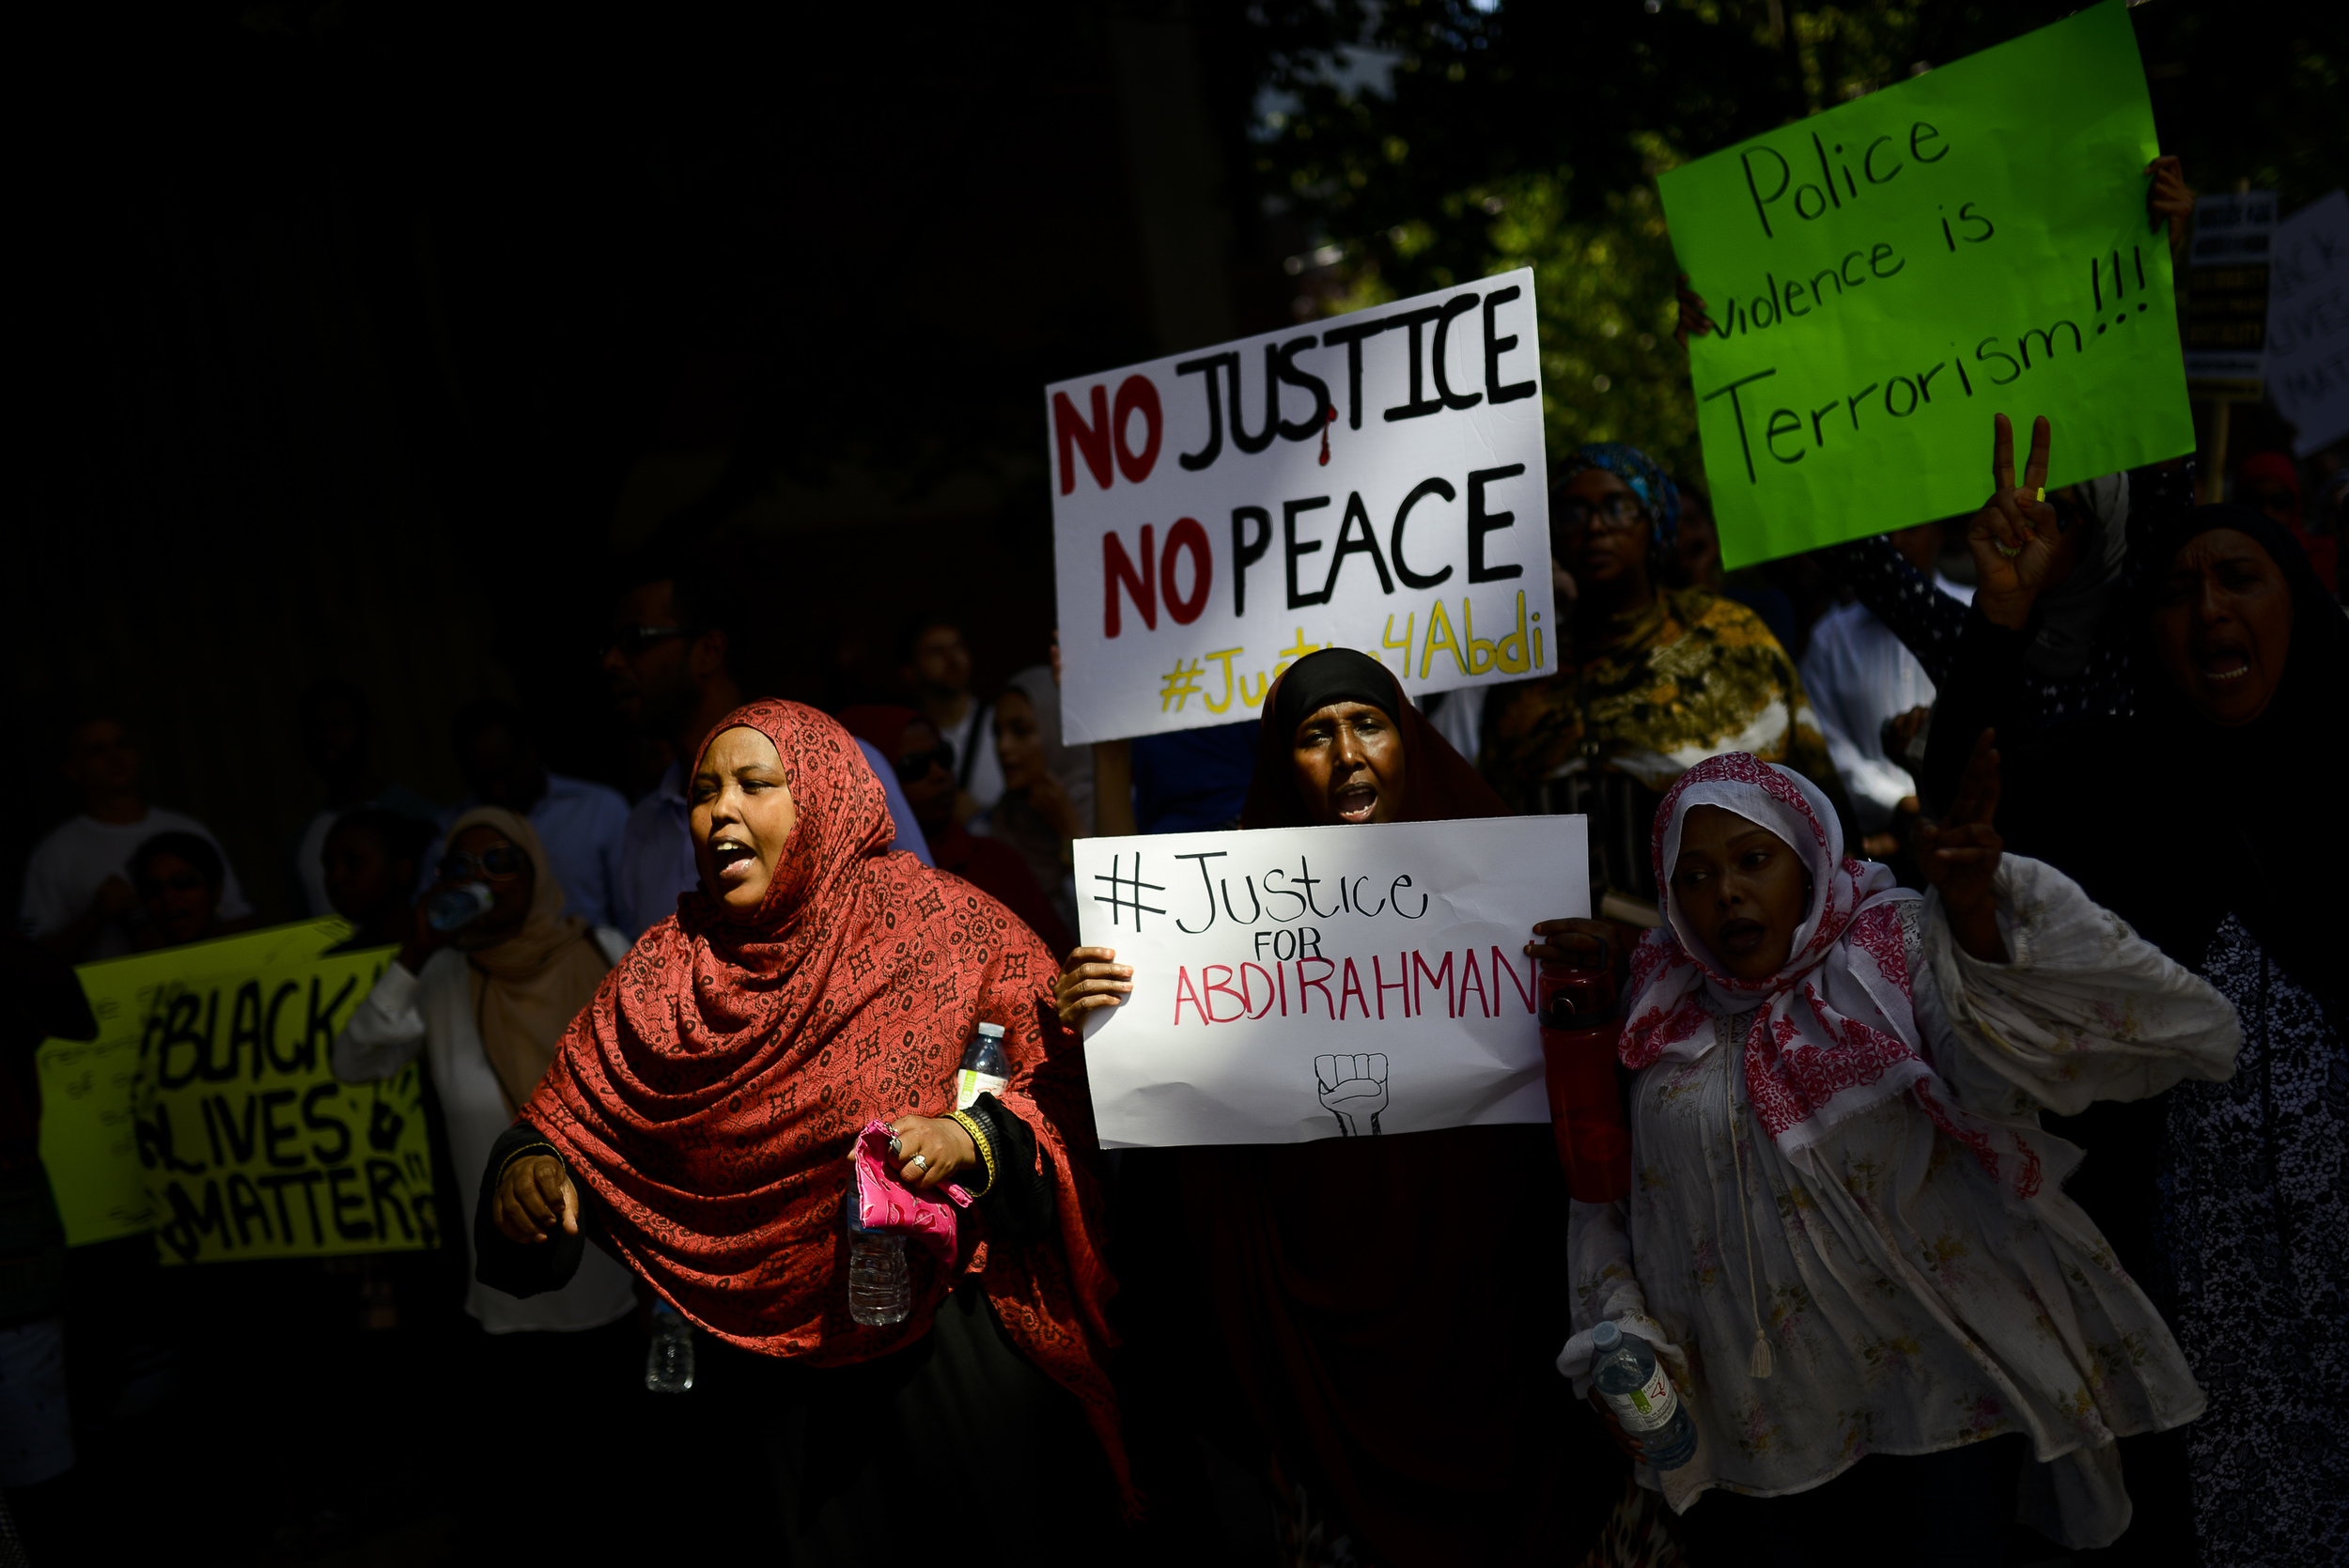 Demonstrators march from Somerset Square park to Ottawa Police headquarter on Elgin street during the March for Justice - In Memory of Abdirahman Abdi.